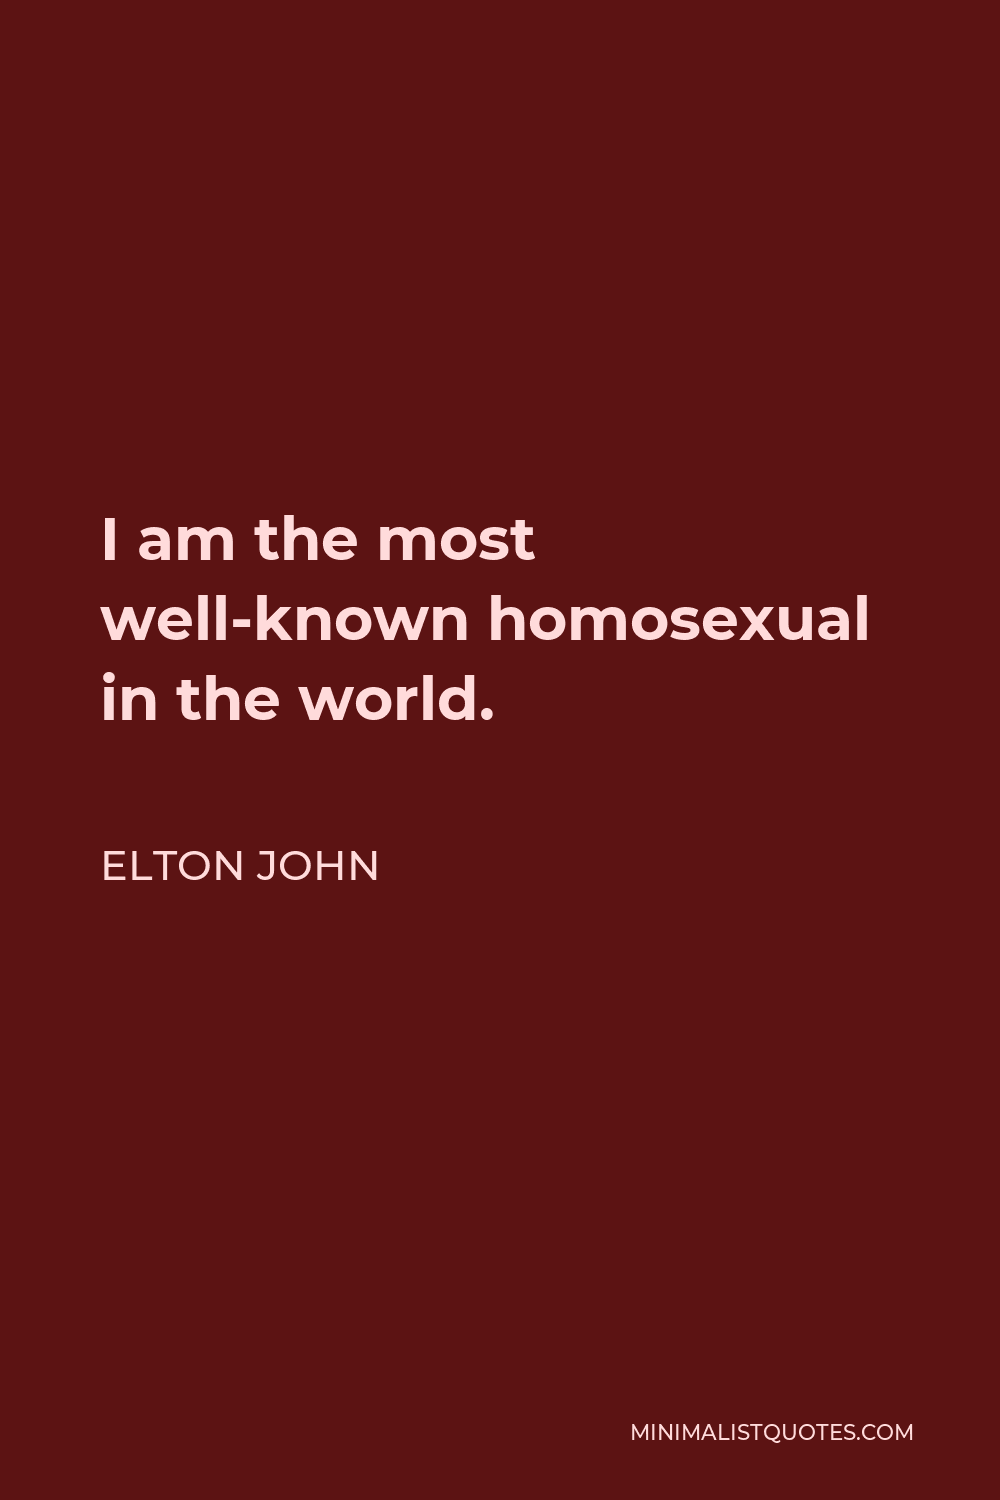 Elton John Quote - I am the most well-known homosexual in the world.